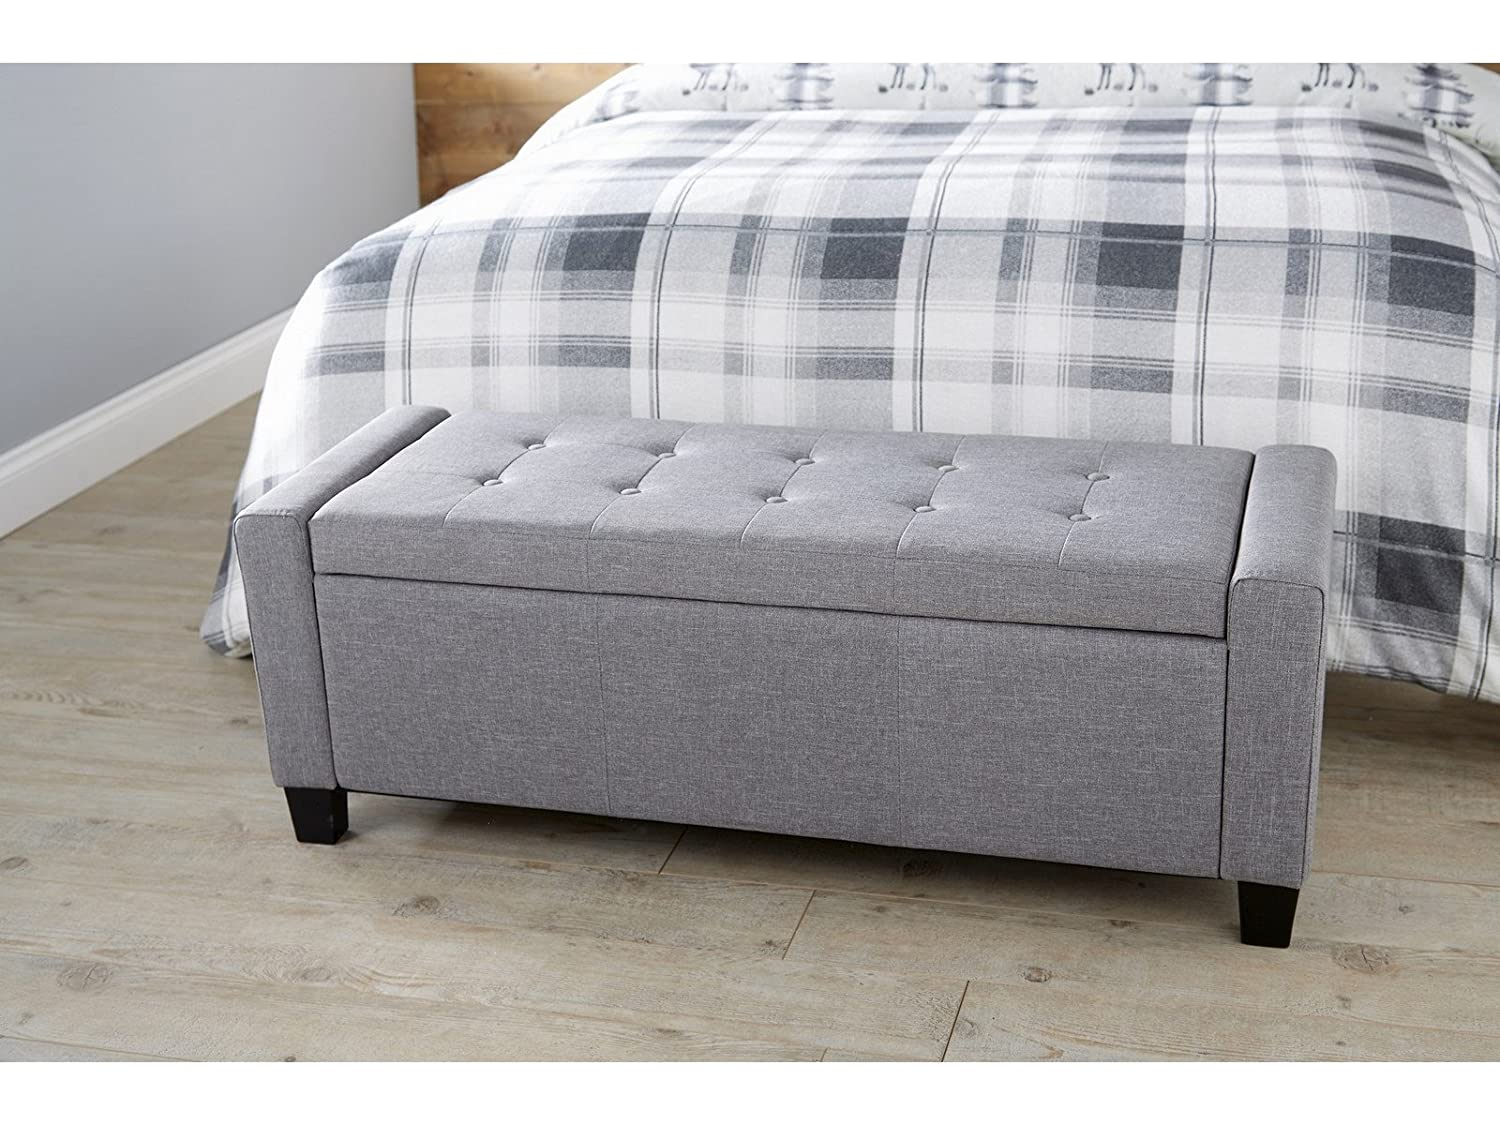 pin next lounge pull ultimate ottoman the within goes level called our there room out and collection family to with a storage this ottomans part tray nestled it of s ii reason trays